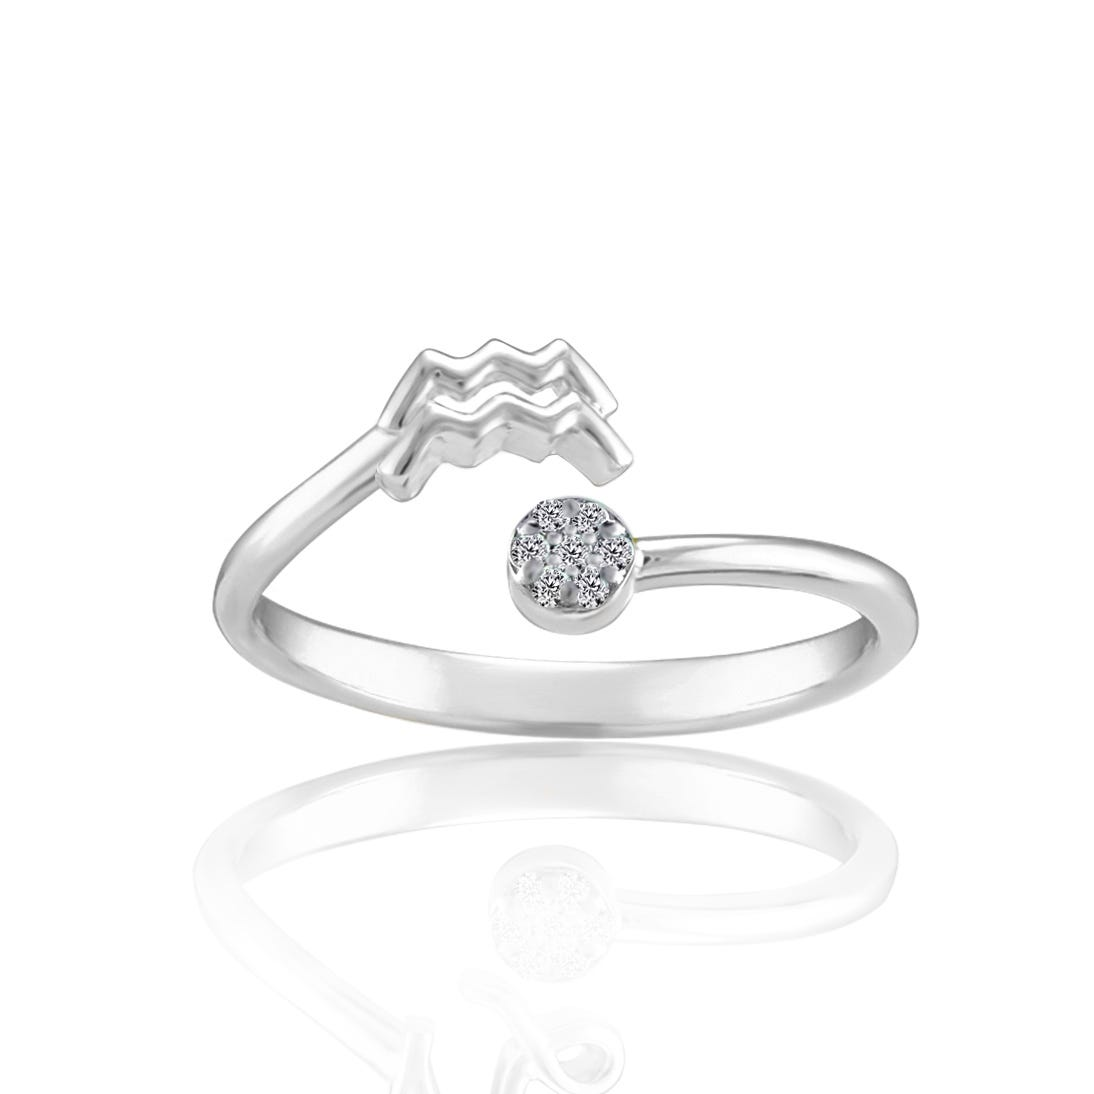 Zodiac Diamond Aquarius Fashion Ring in Sterling Silver